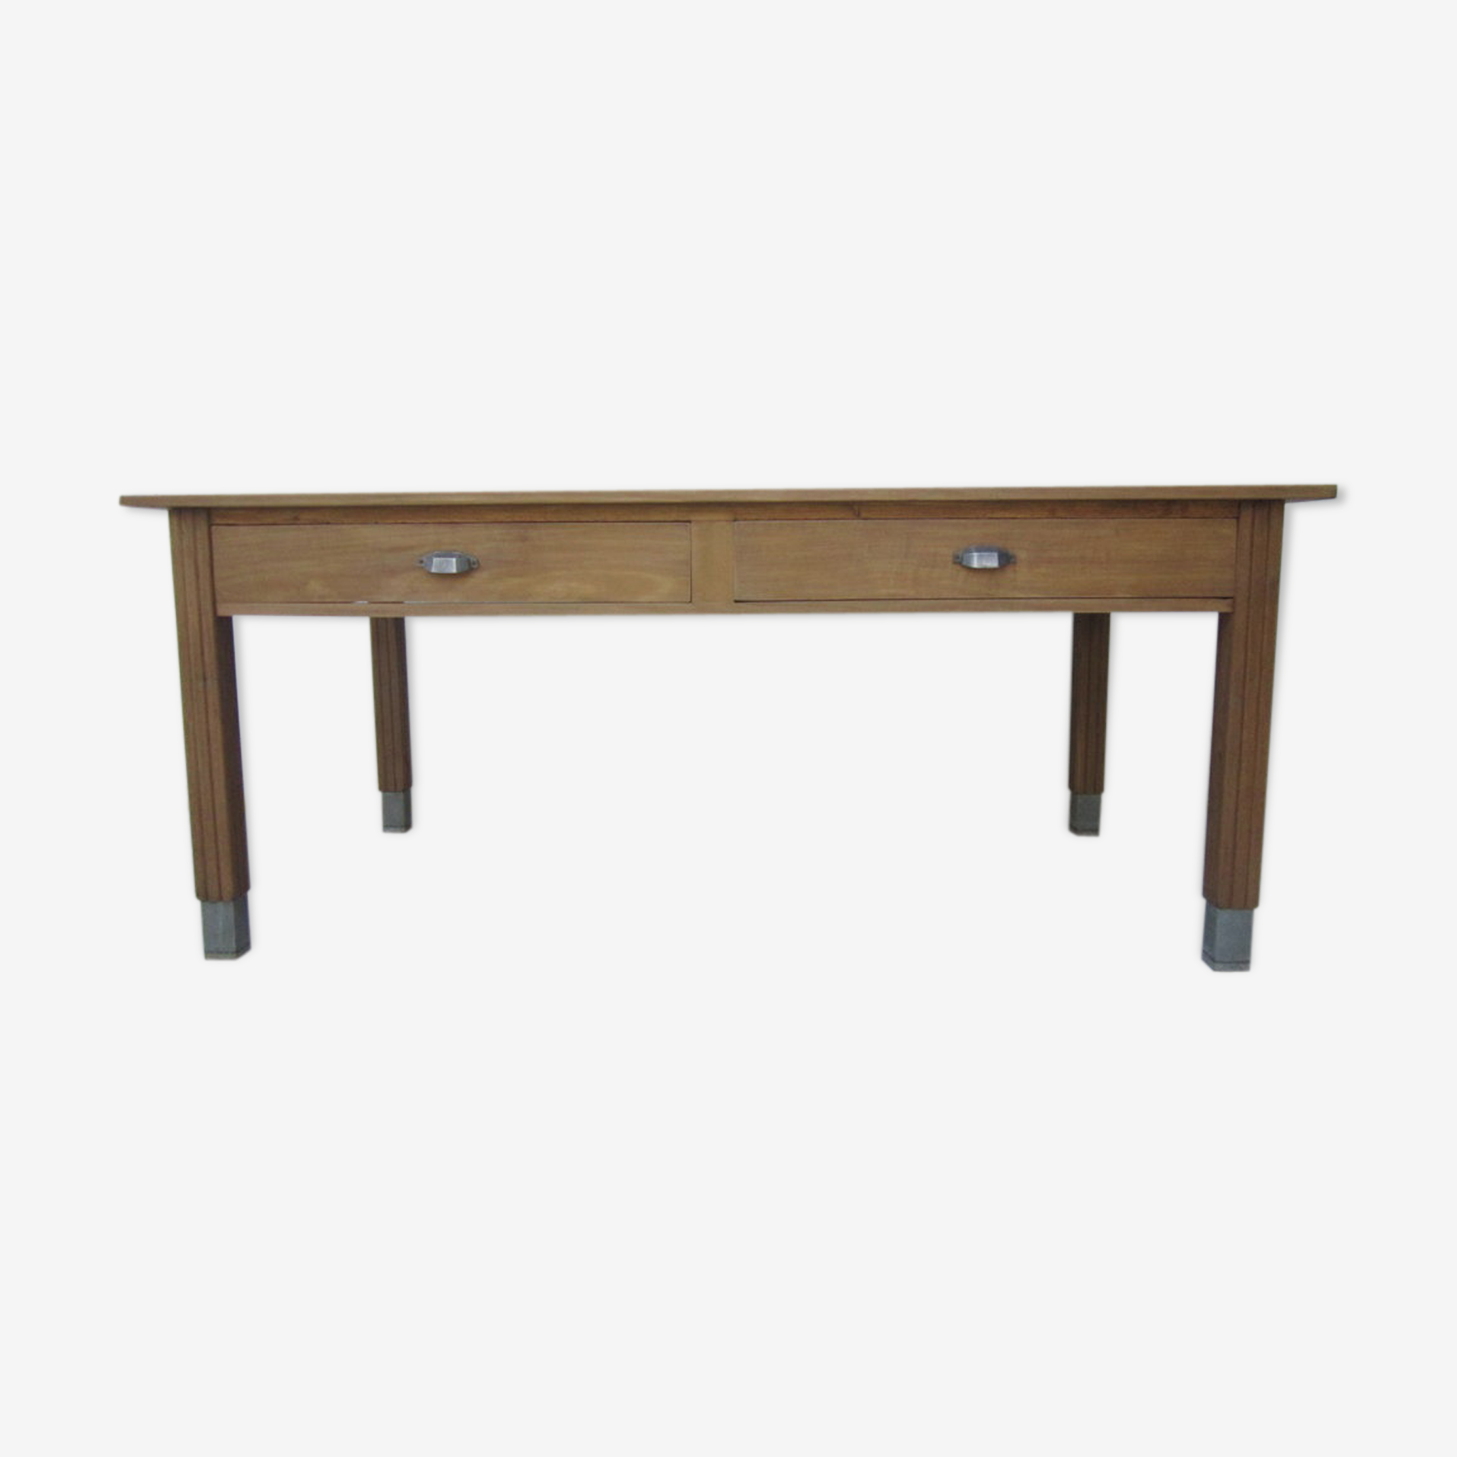 For 8 people farm table